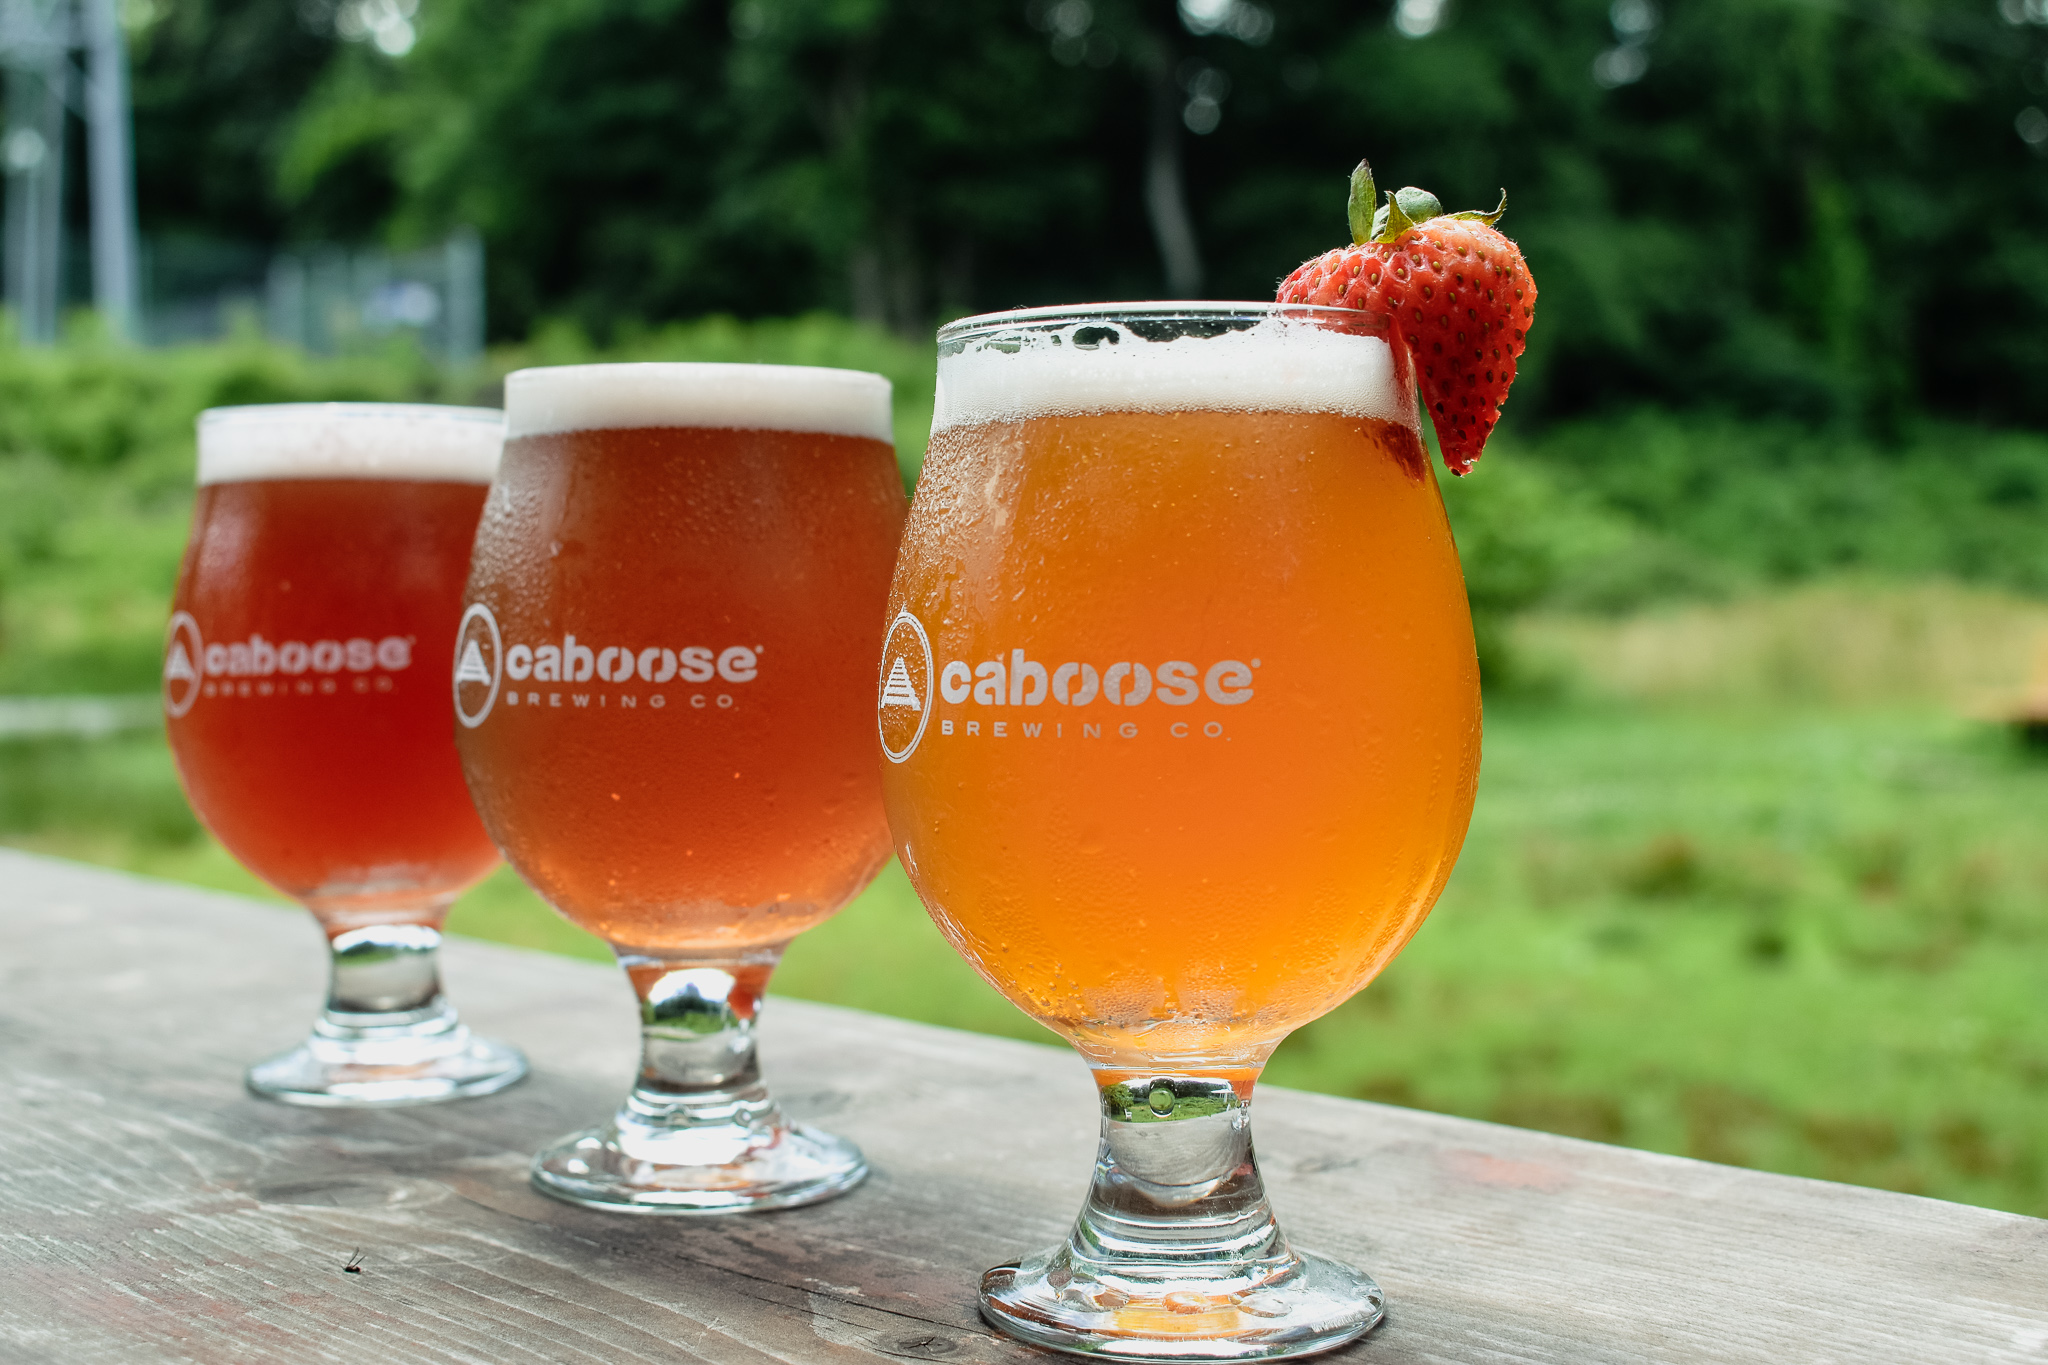 White Tail Wit with Blackberry Shrub, Hilltop Haze with Blueberry Shrub, and Fog IPA with Strawberry Shrub